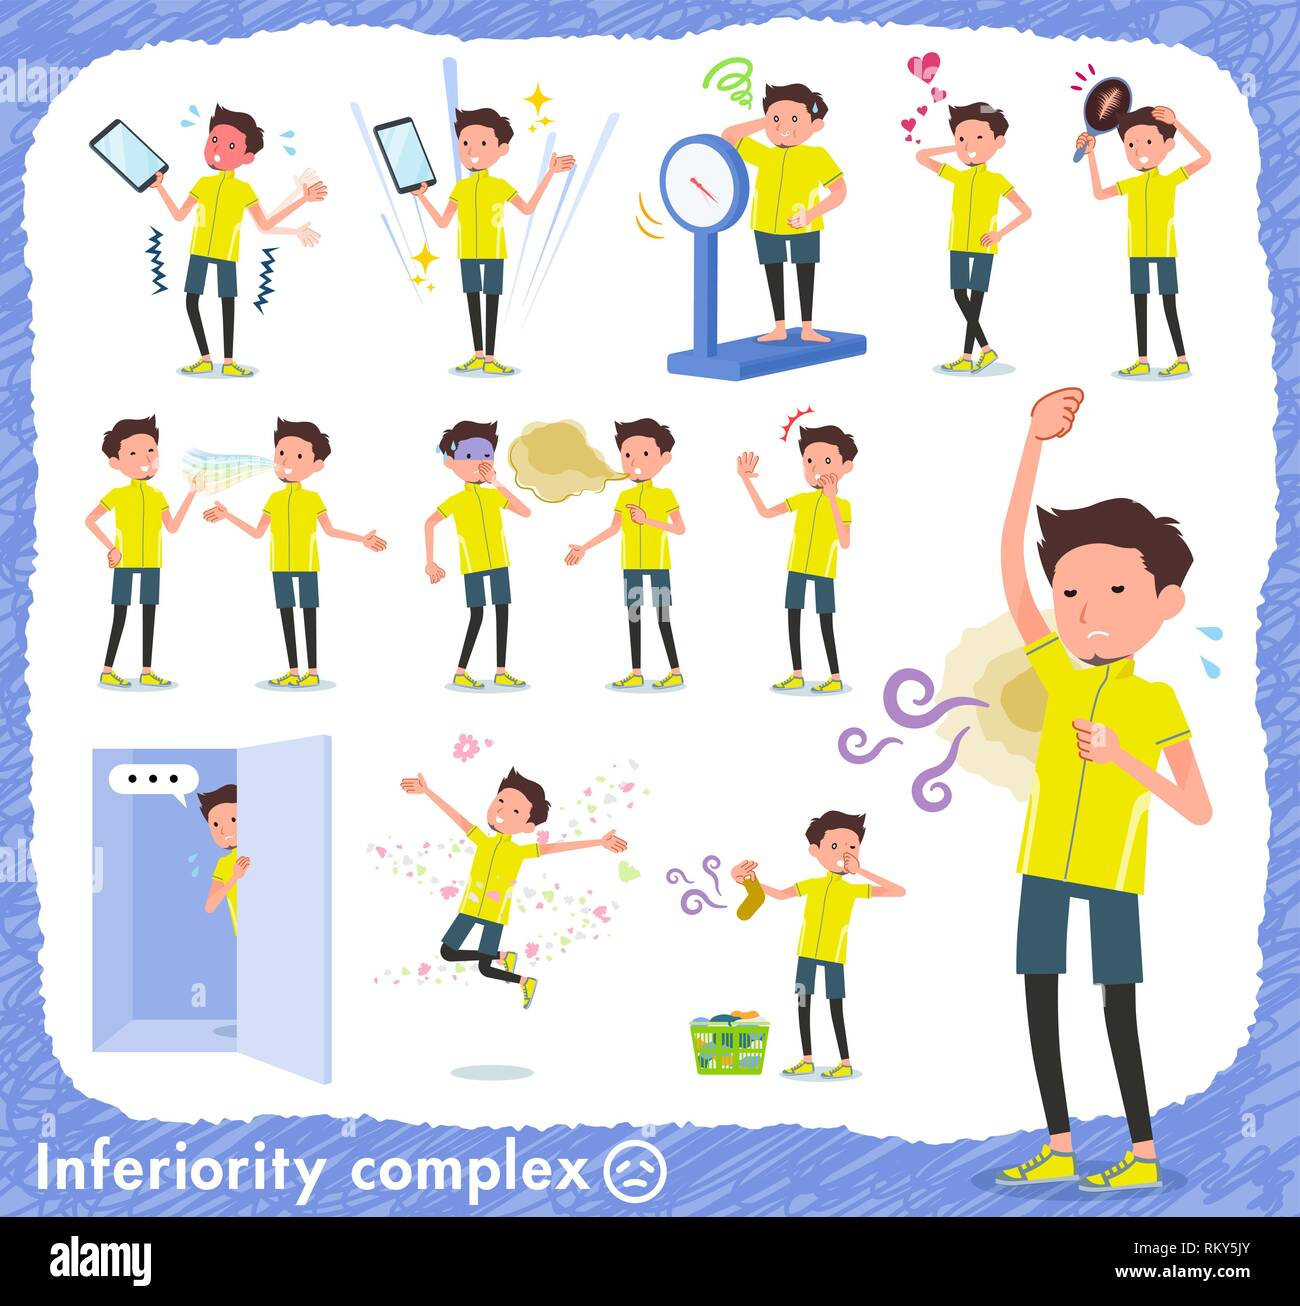 A set of man in sportswear on inferiority complex.There are actions suffering from smell and appearance.It's vector art so it's easy to edit. Stock Vector